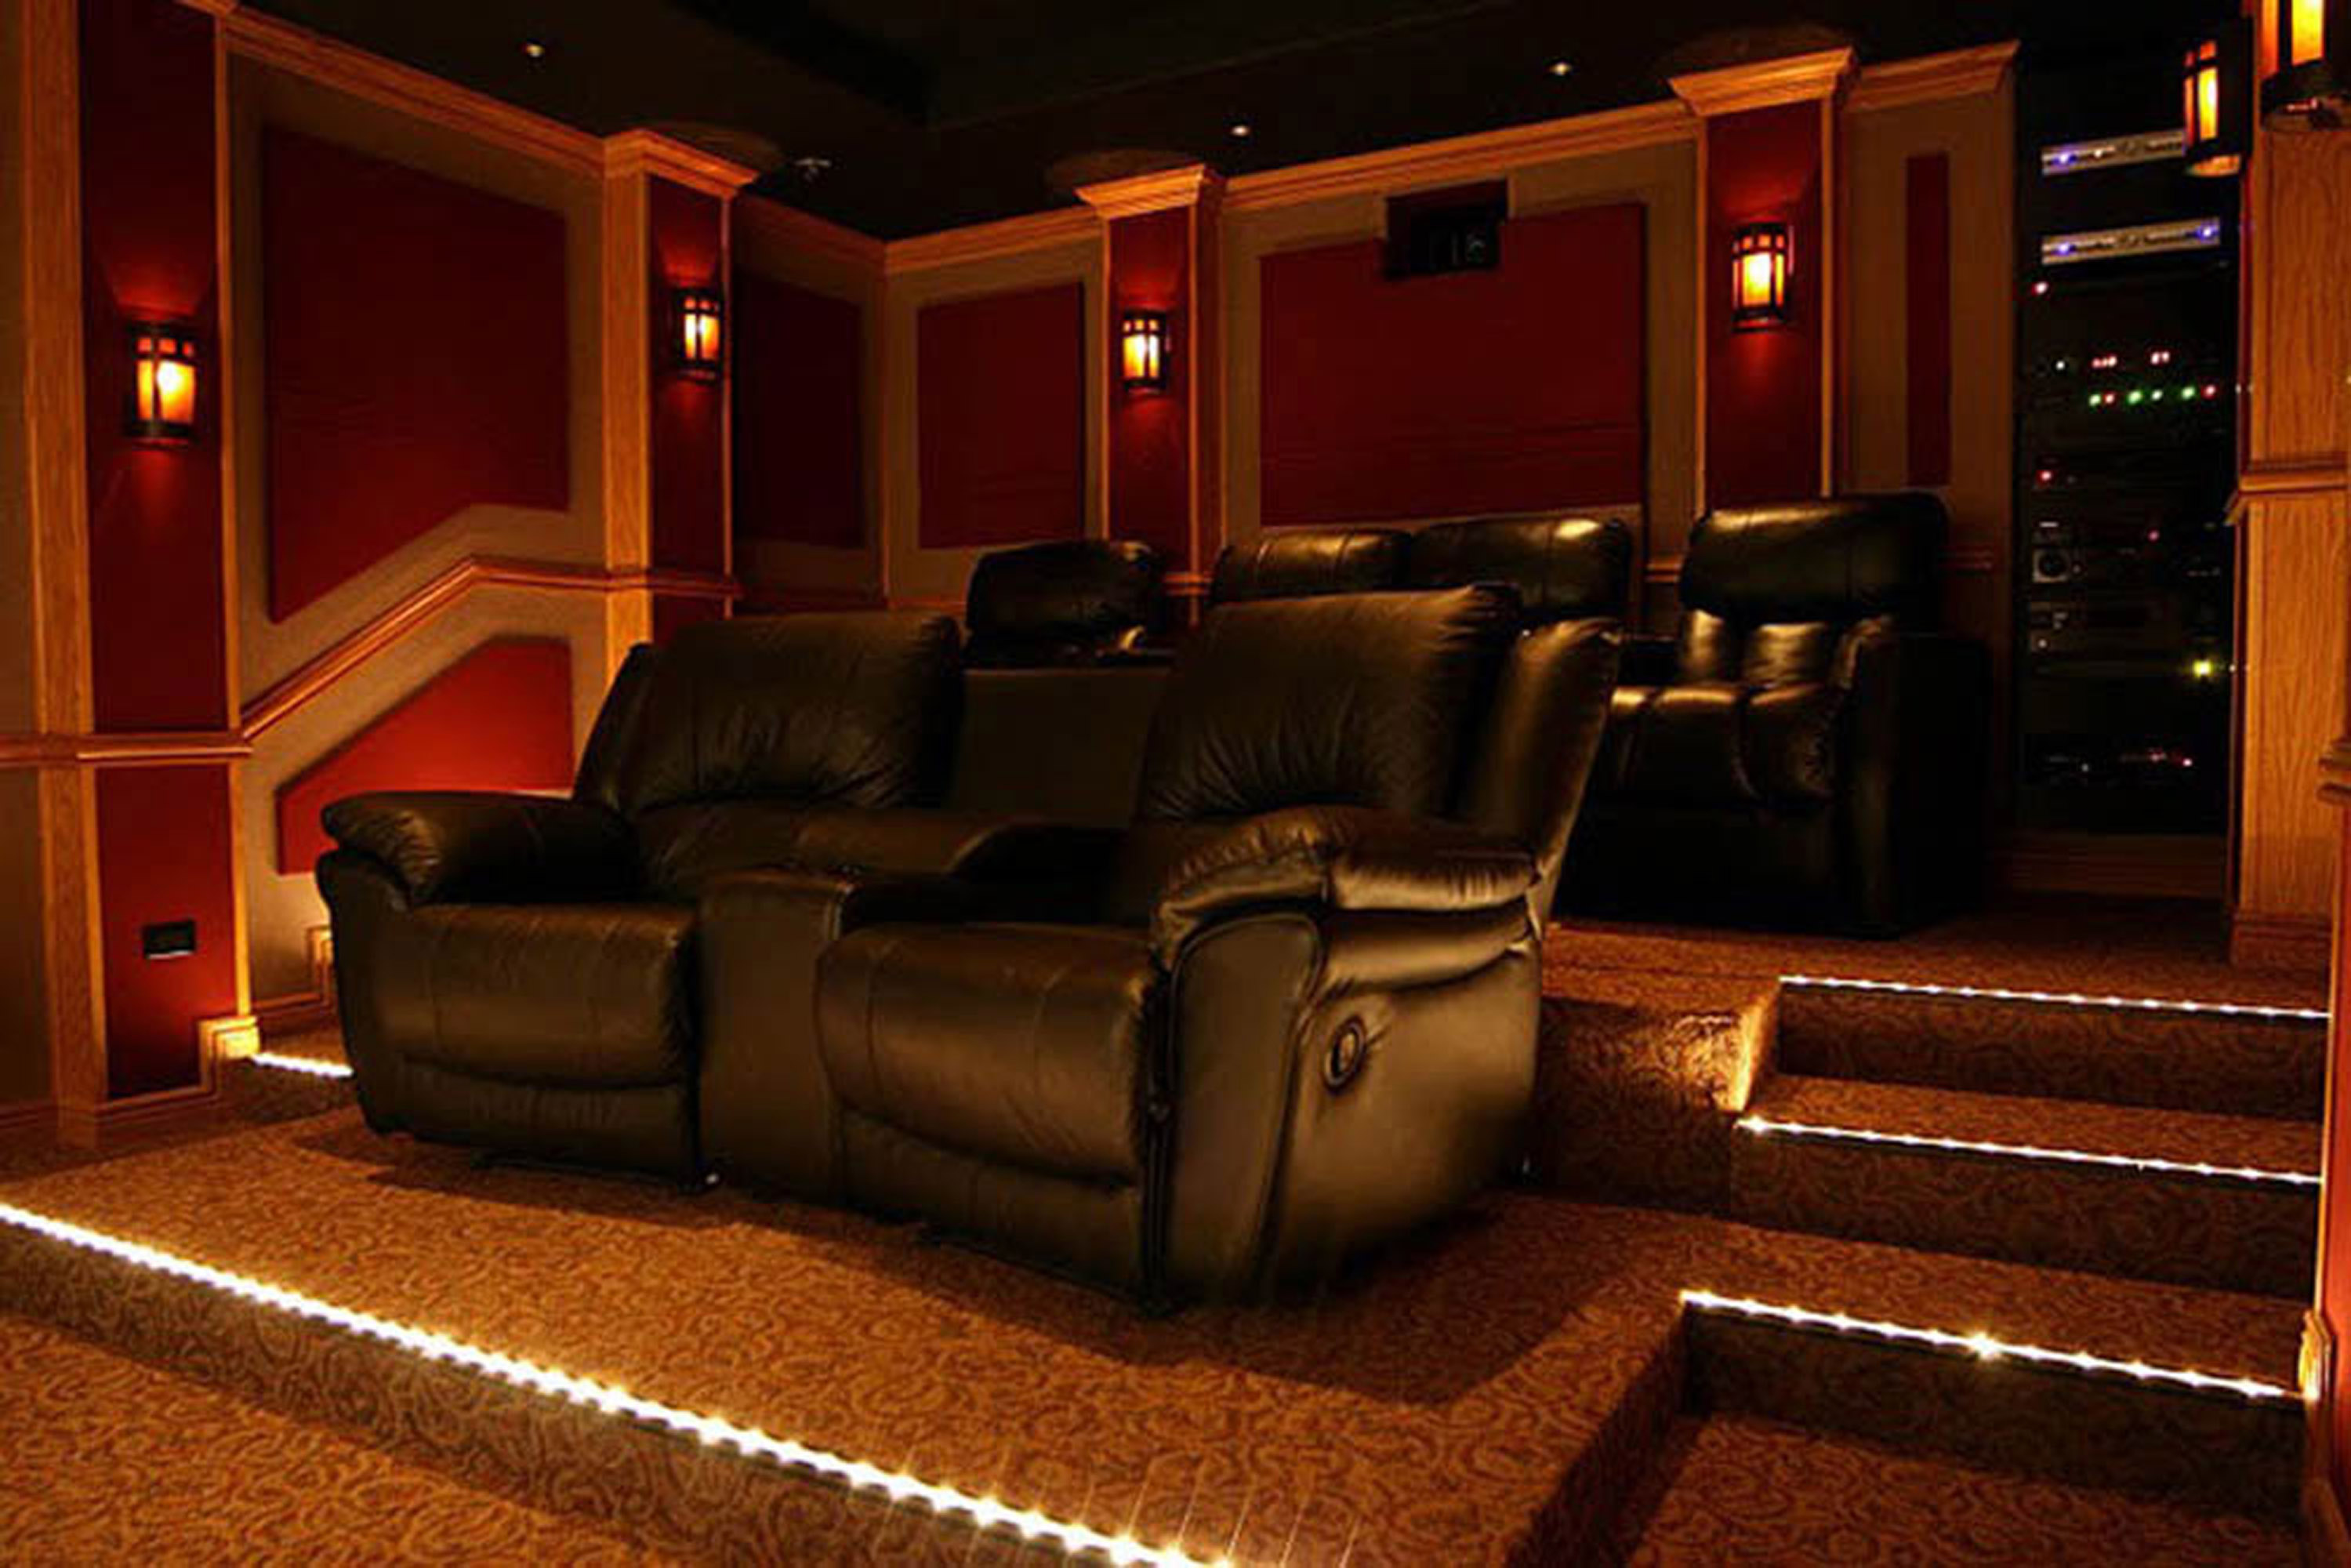 A dedicated home theater needs just the right lighting to set the tone.